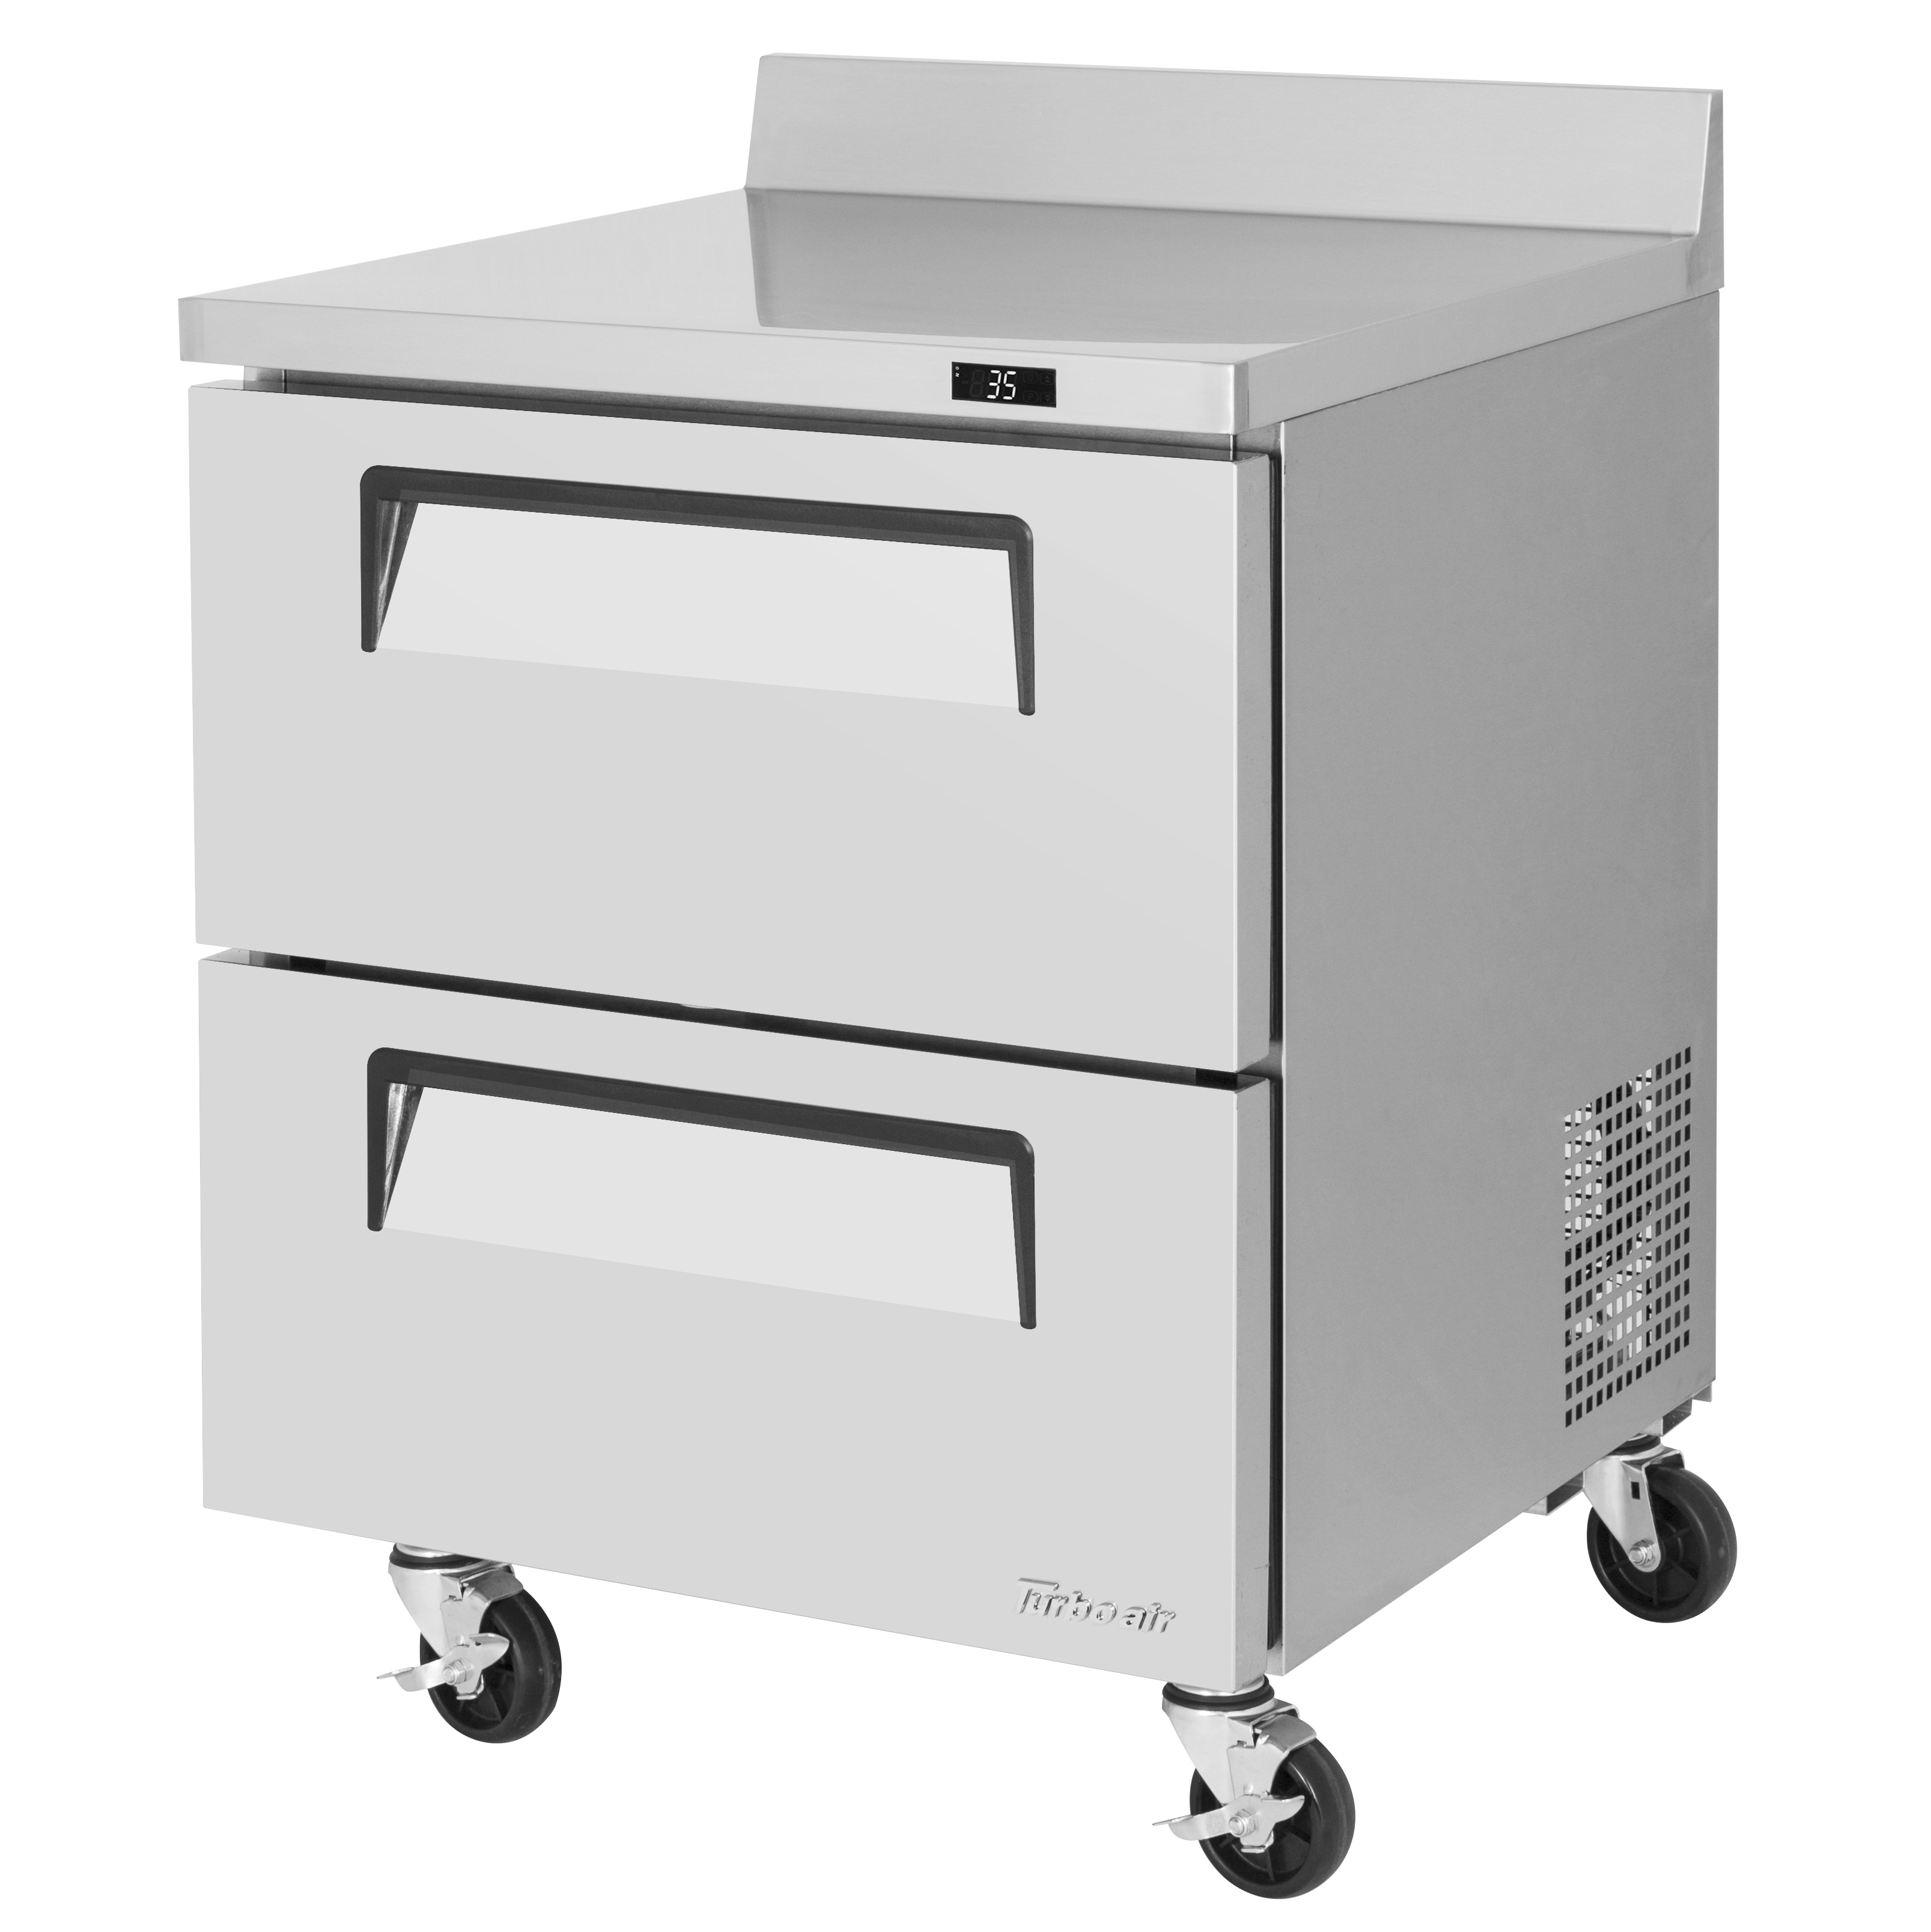 Turbo Air TWR-28SD-D2-N refrigerated counter, work top